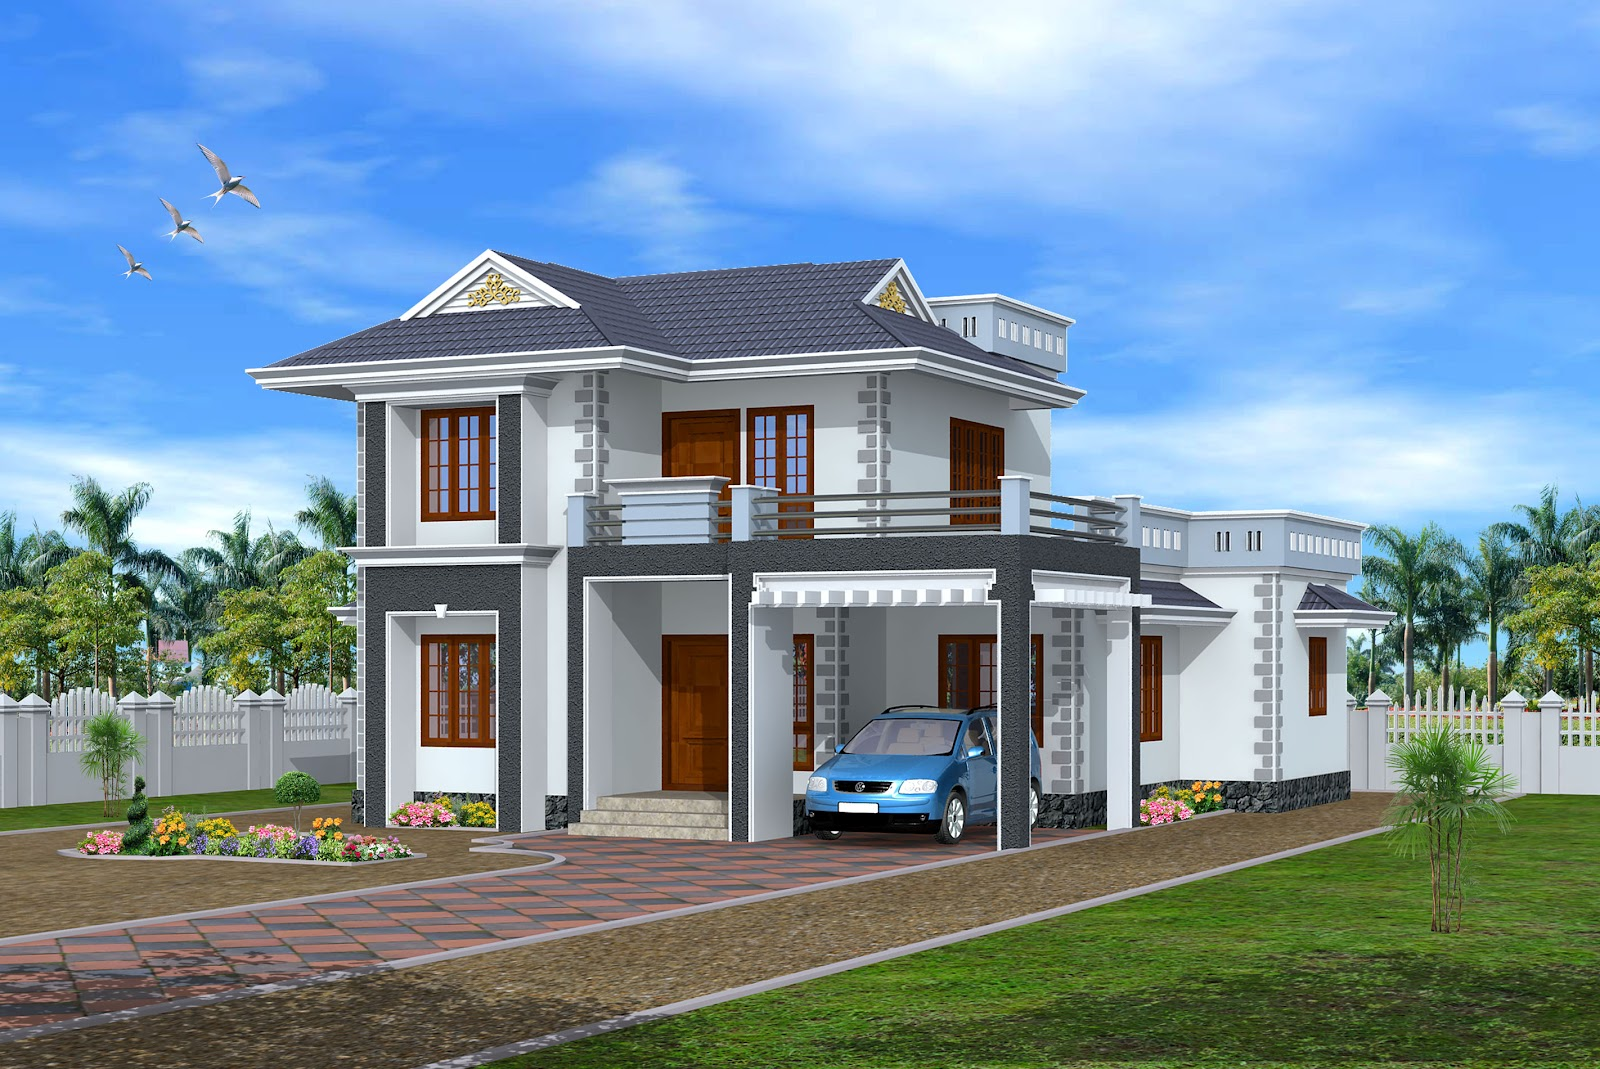 New home designs latest modern homes exterior designs views for Home design ideas 3d